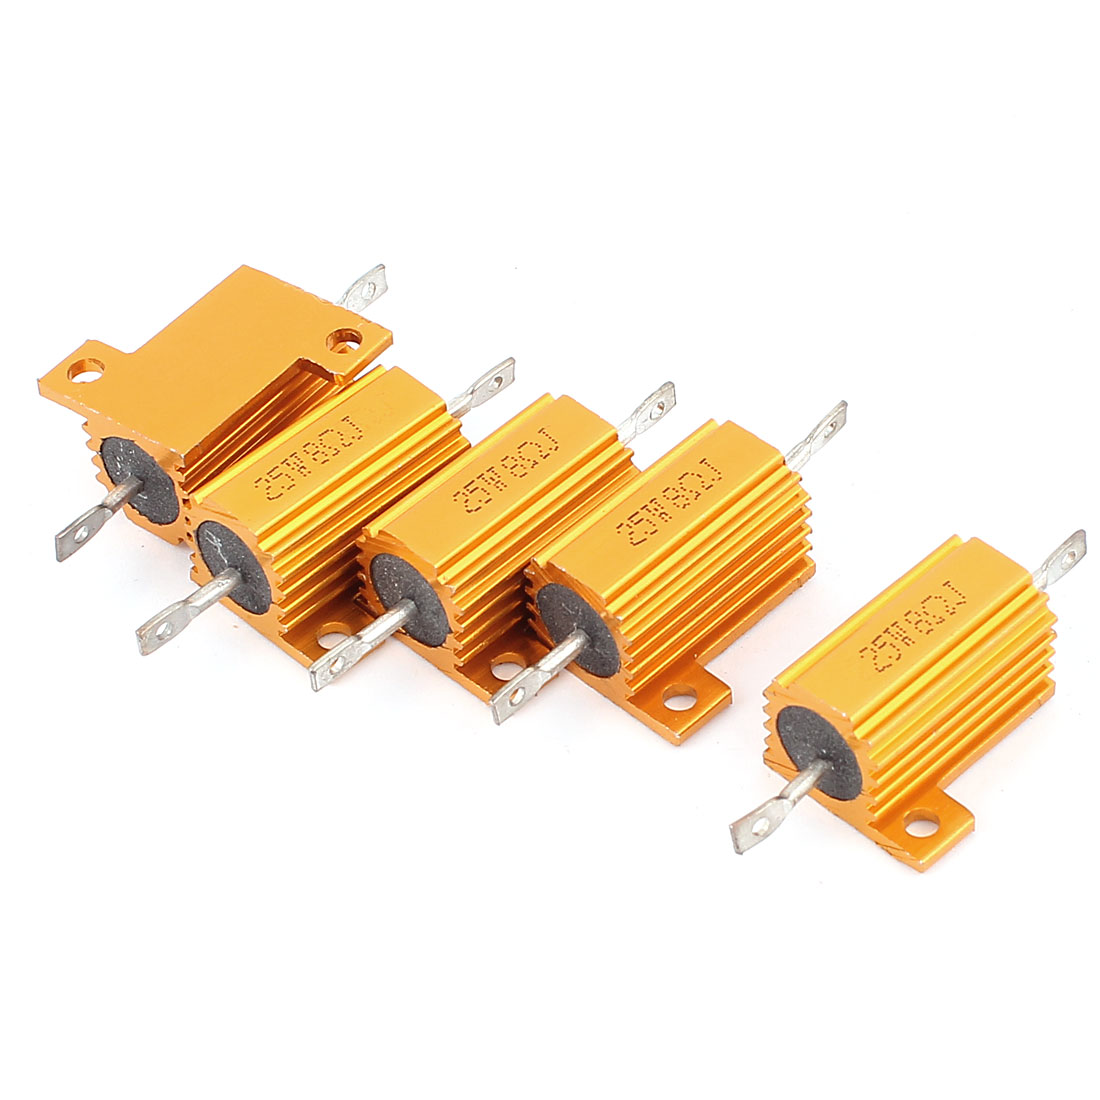 5 Pcs 25W 8 Ohm Wirewound Aluminium Housing Power Resistance Resistor